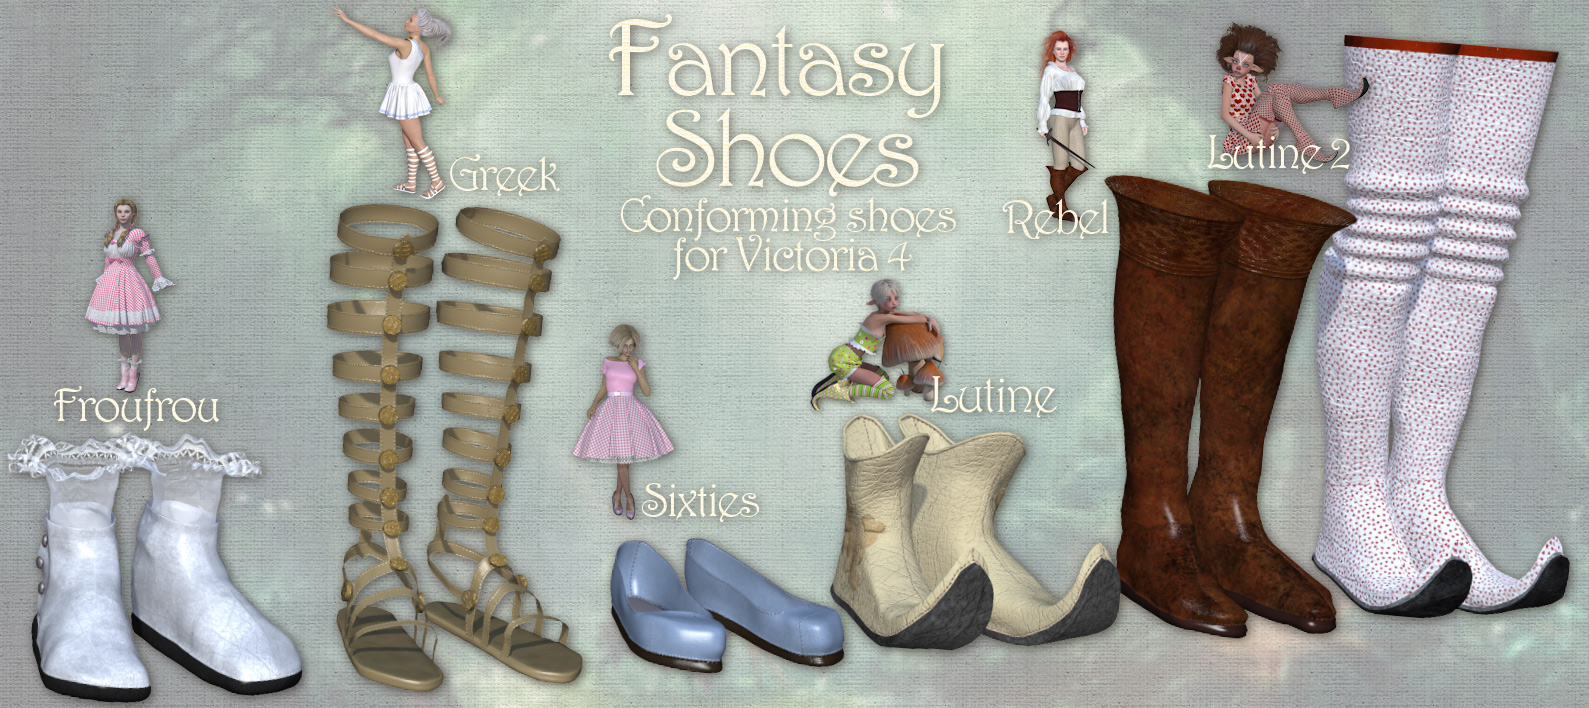 Fantasy Shoes for Victoria 4